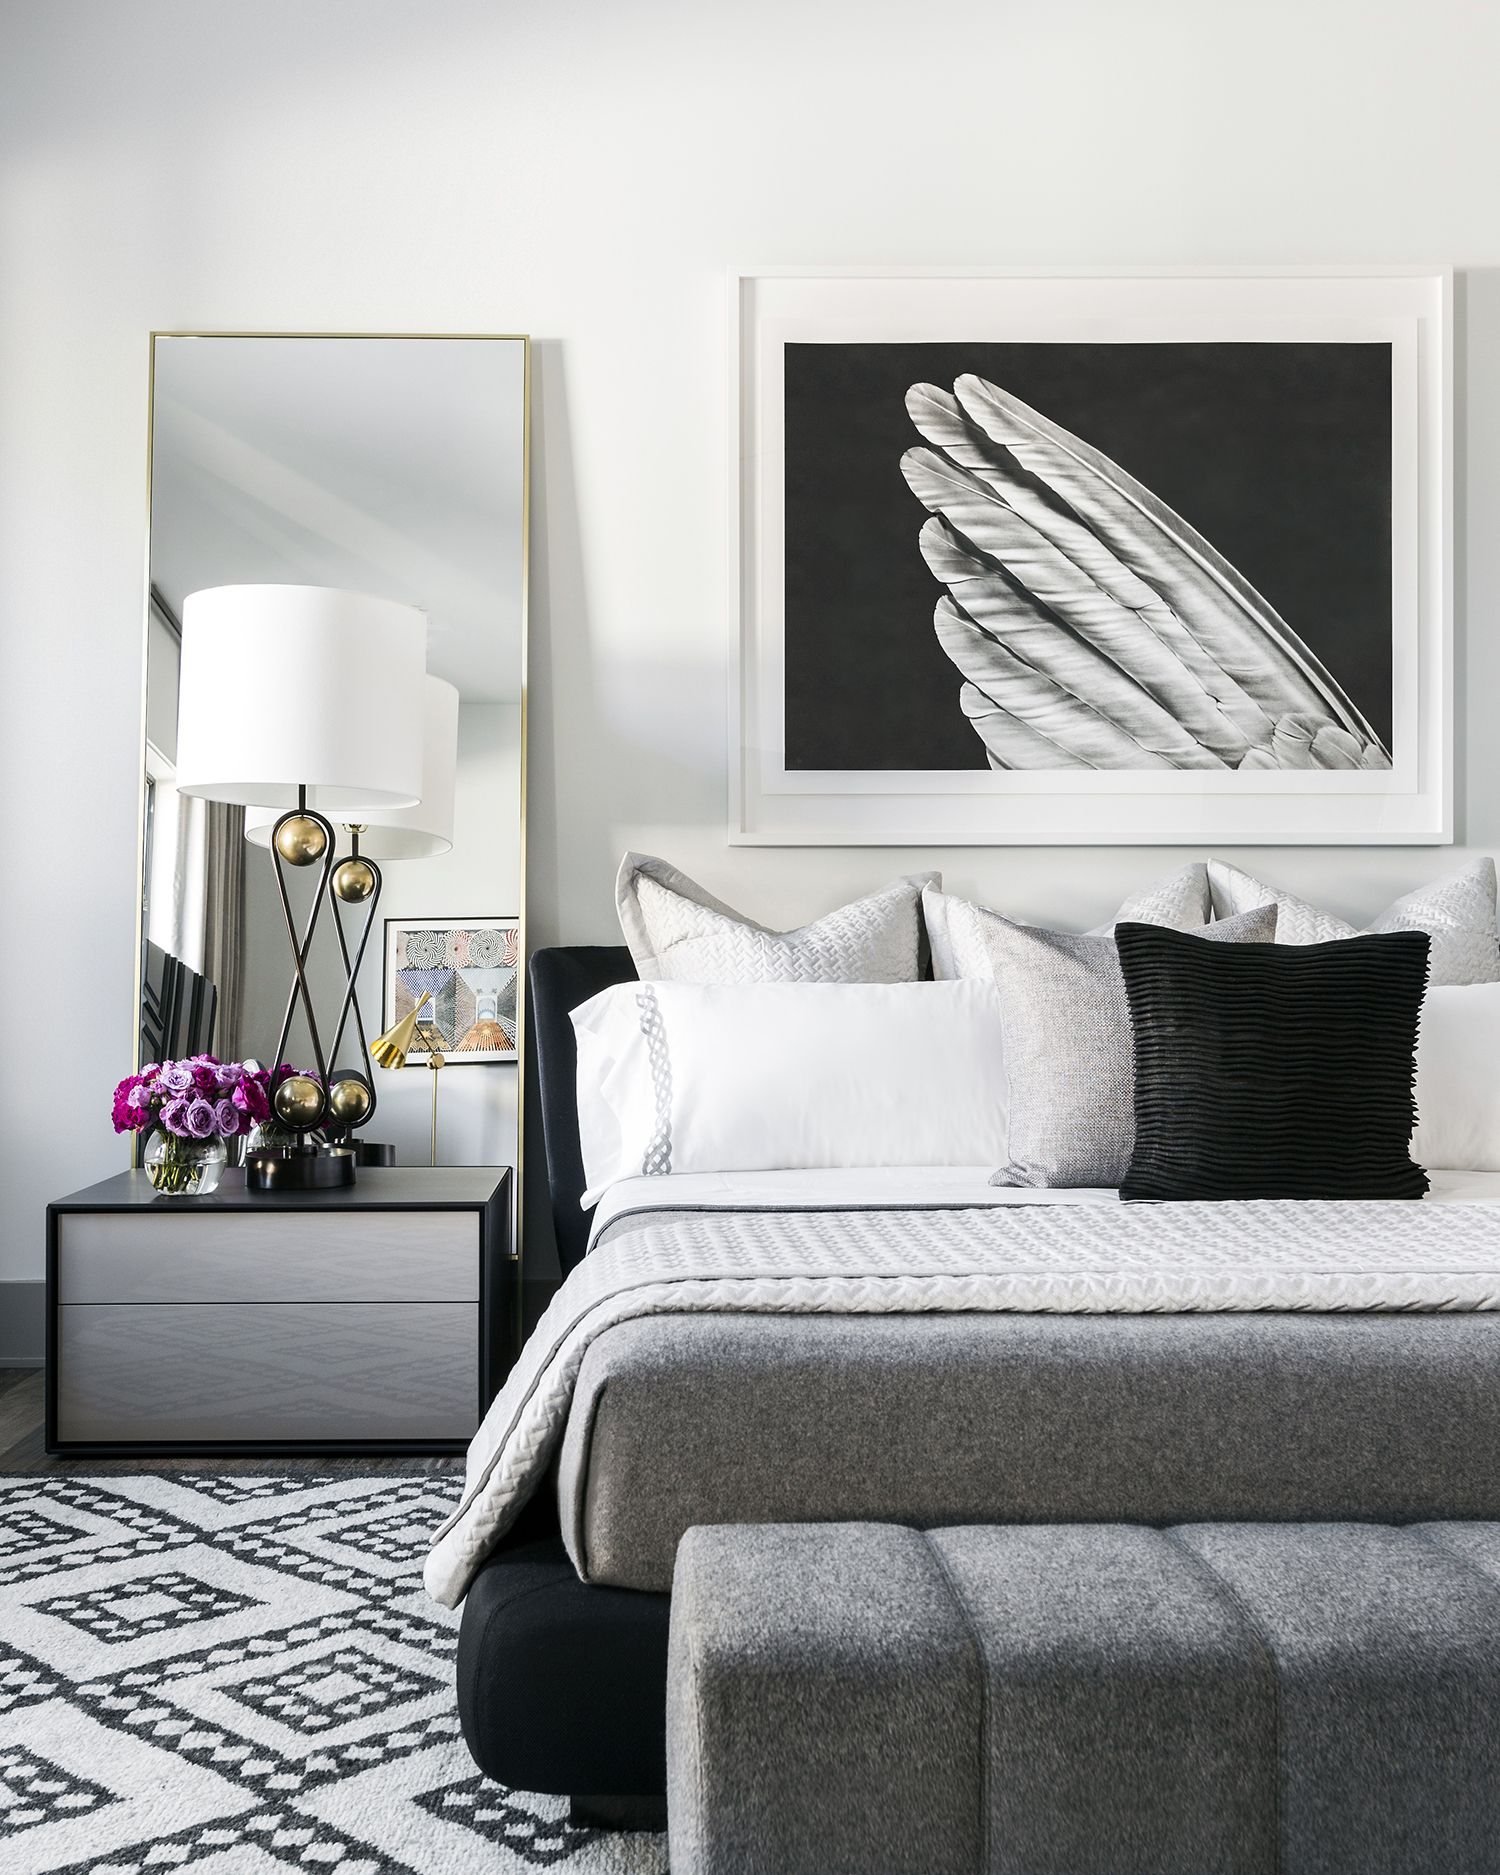 black-white-bedrooms & 36 Black \u0026 White Bedrooms - Photos and Ideas for Bedrooms with Black ...